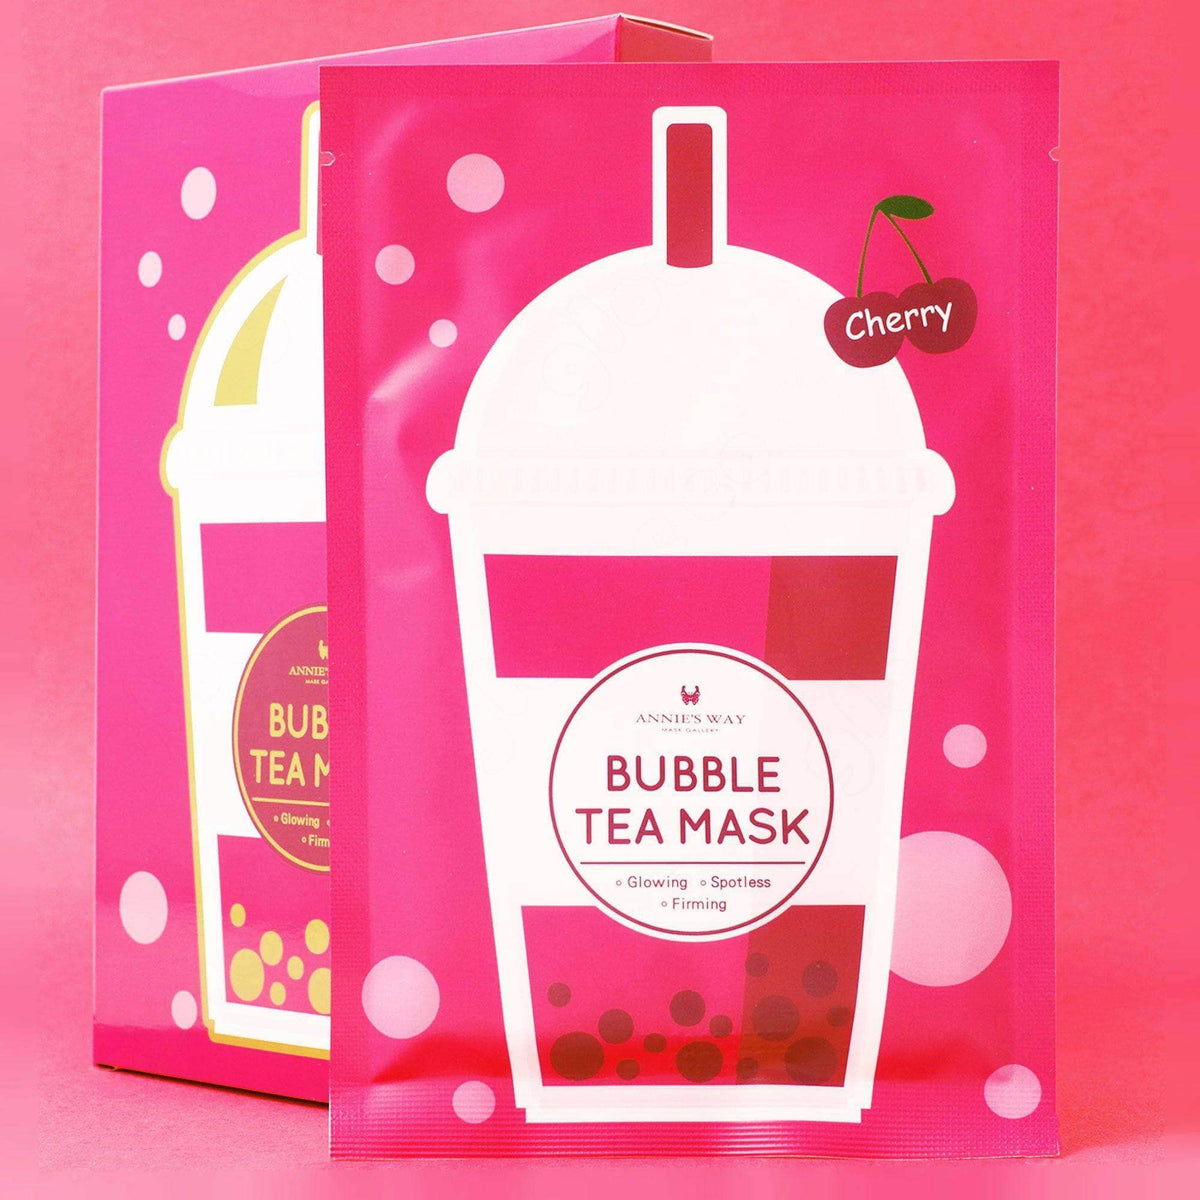 Annie's Way Cherry Glowing Bubble Tea Mask